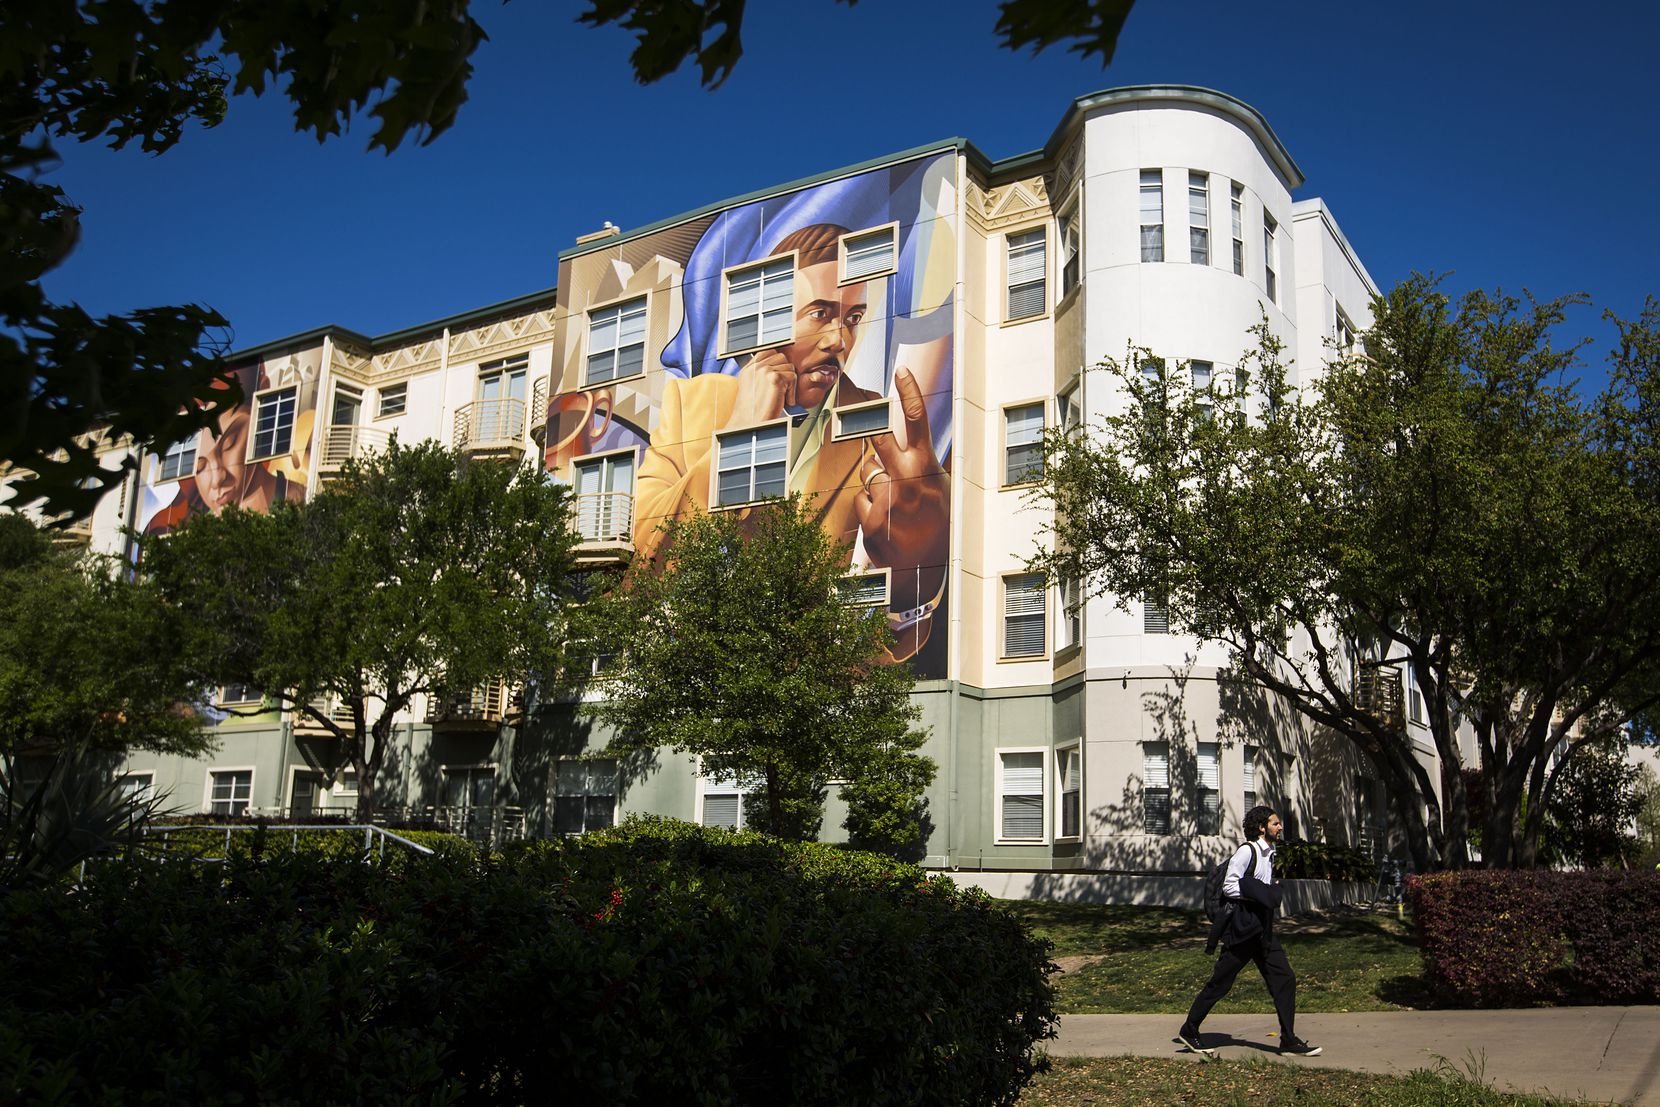 The four-story apartment buildings were previously covered in bright murals.